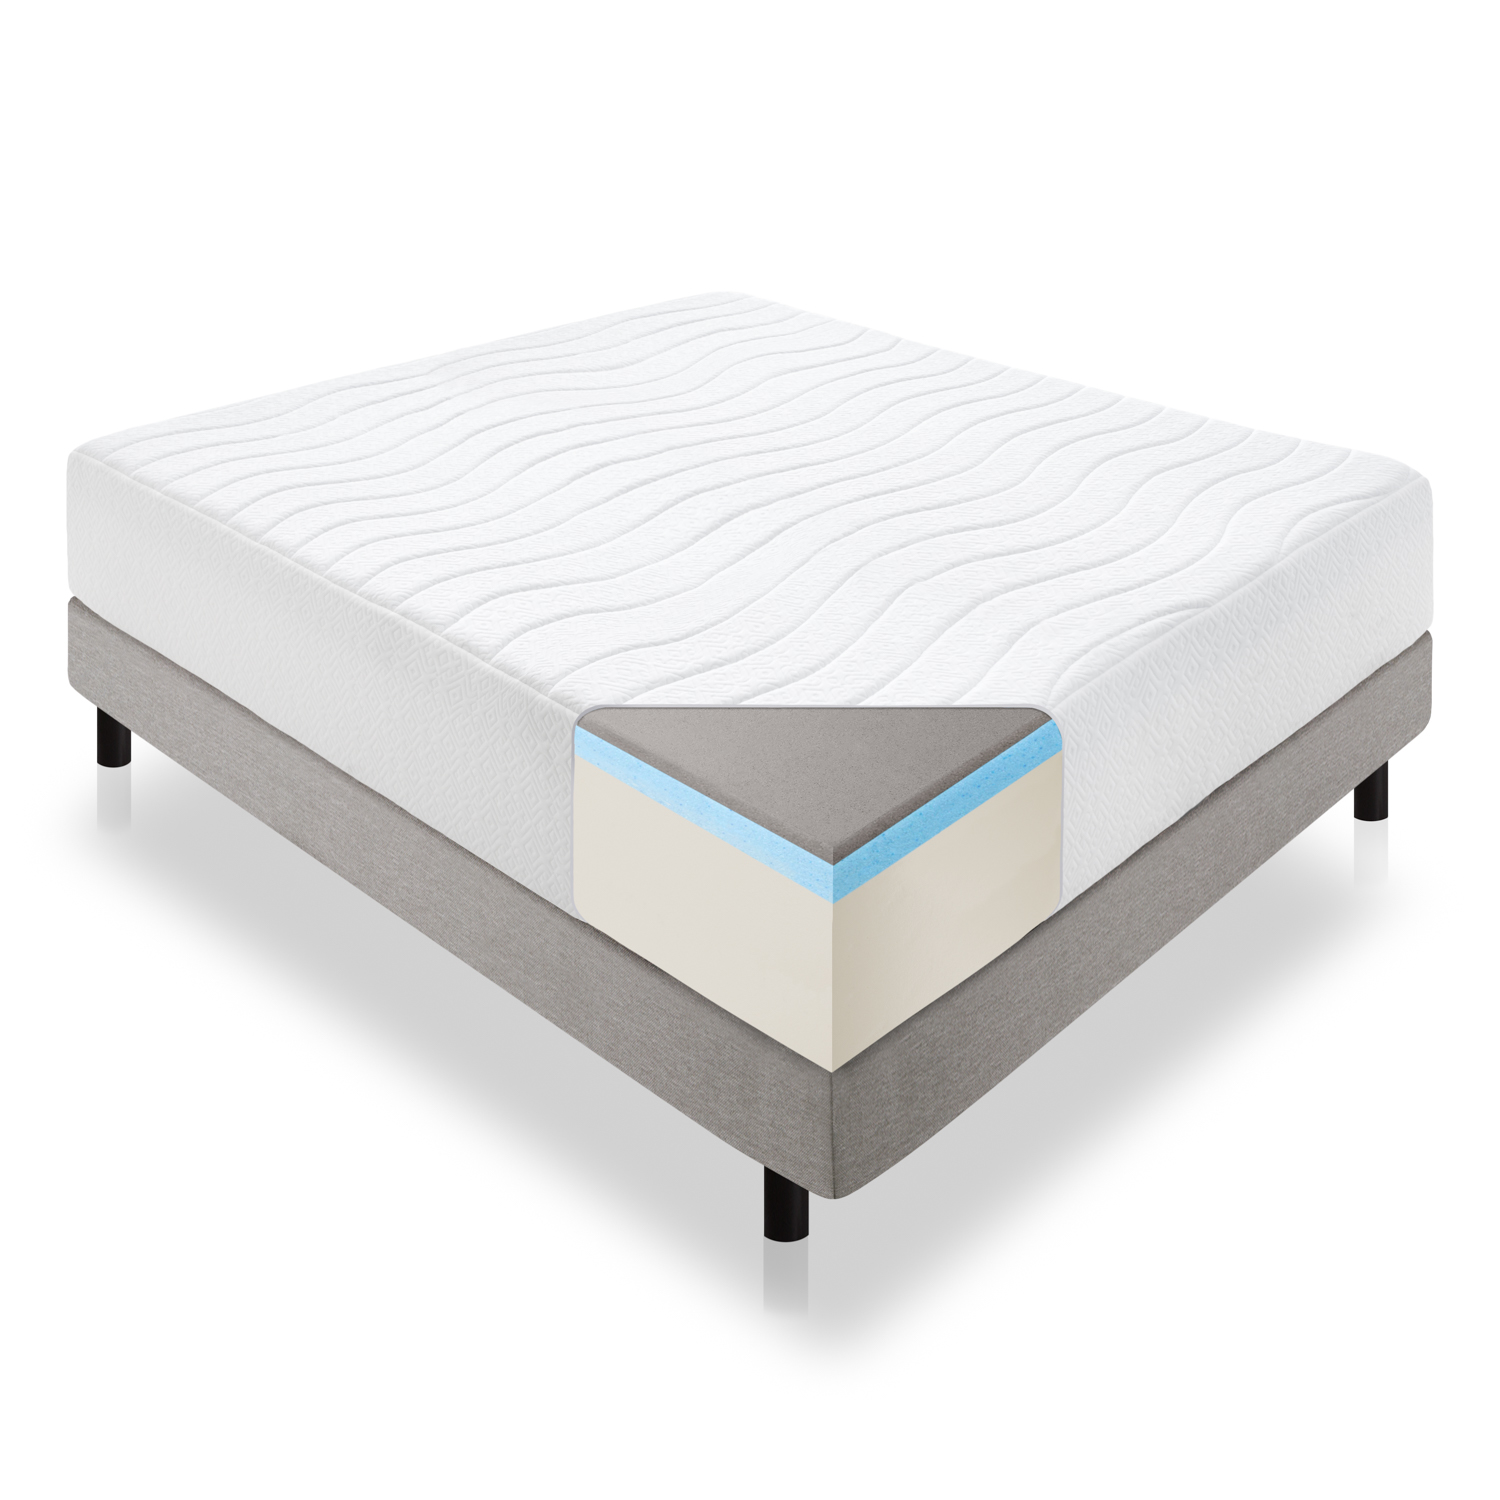 lucid-14-inch-plush-memory-foam-mattress